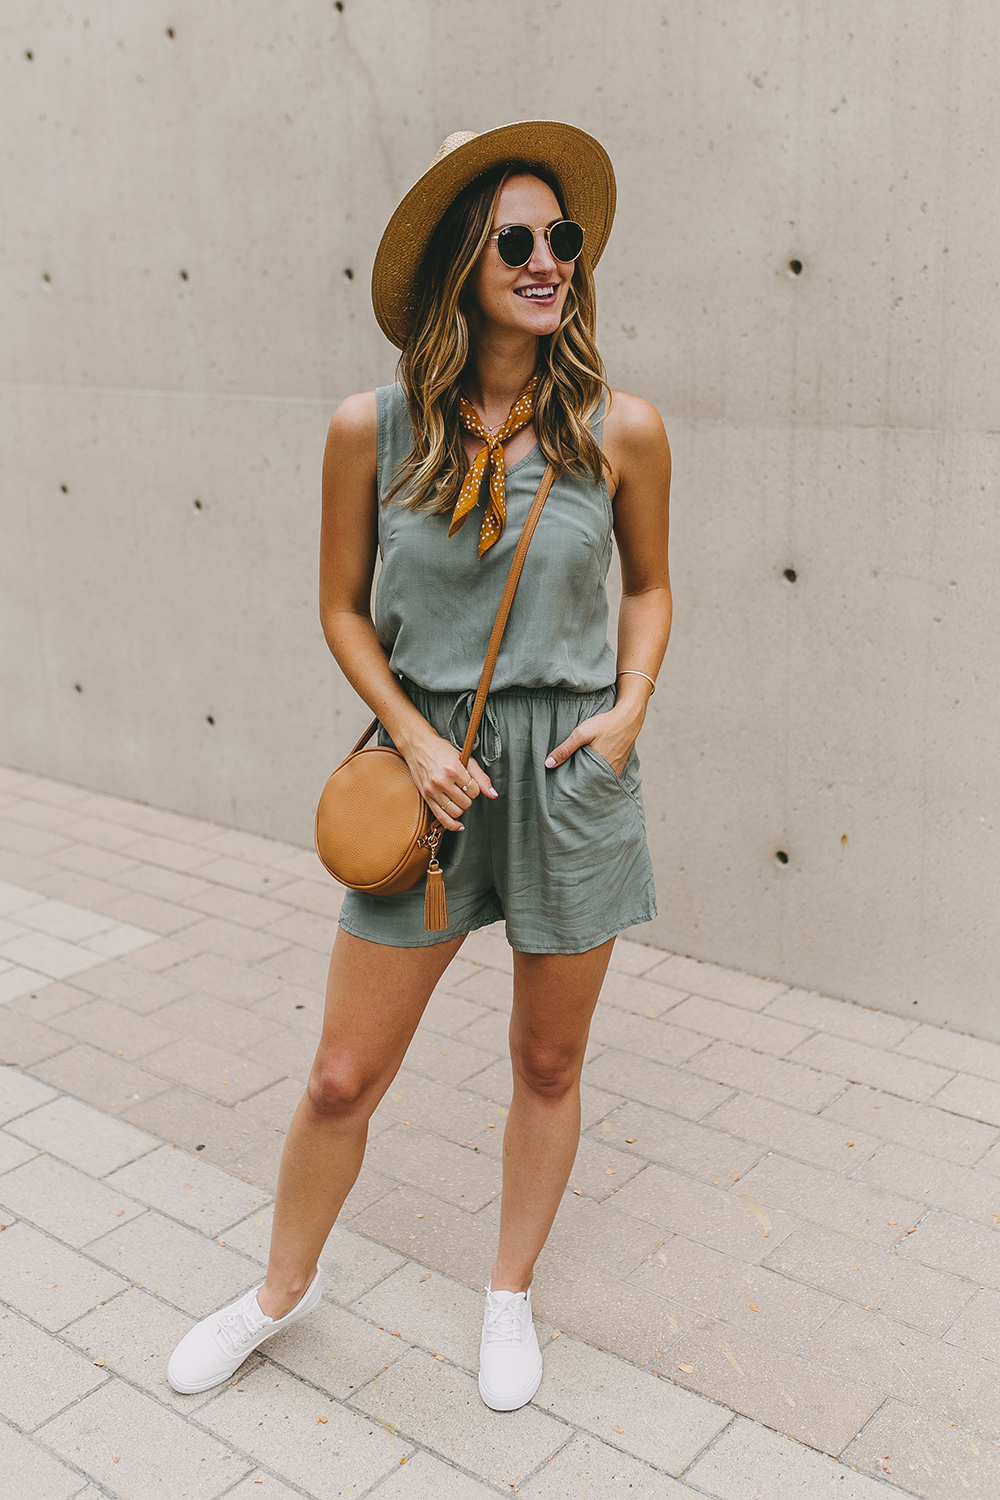 livvyland-blog-olivia-watson-austin-texas-fashion-lifestyle-blog-what-to-wear-acl-festival-6